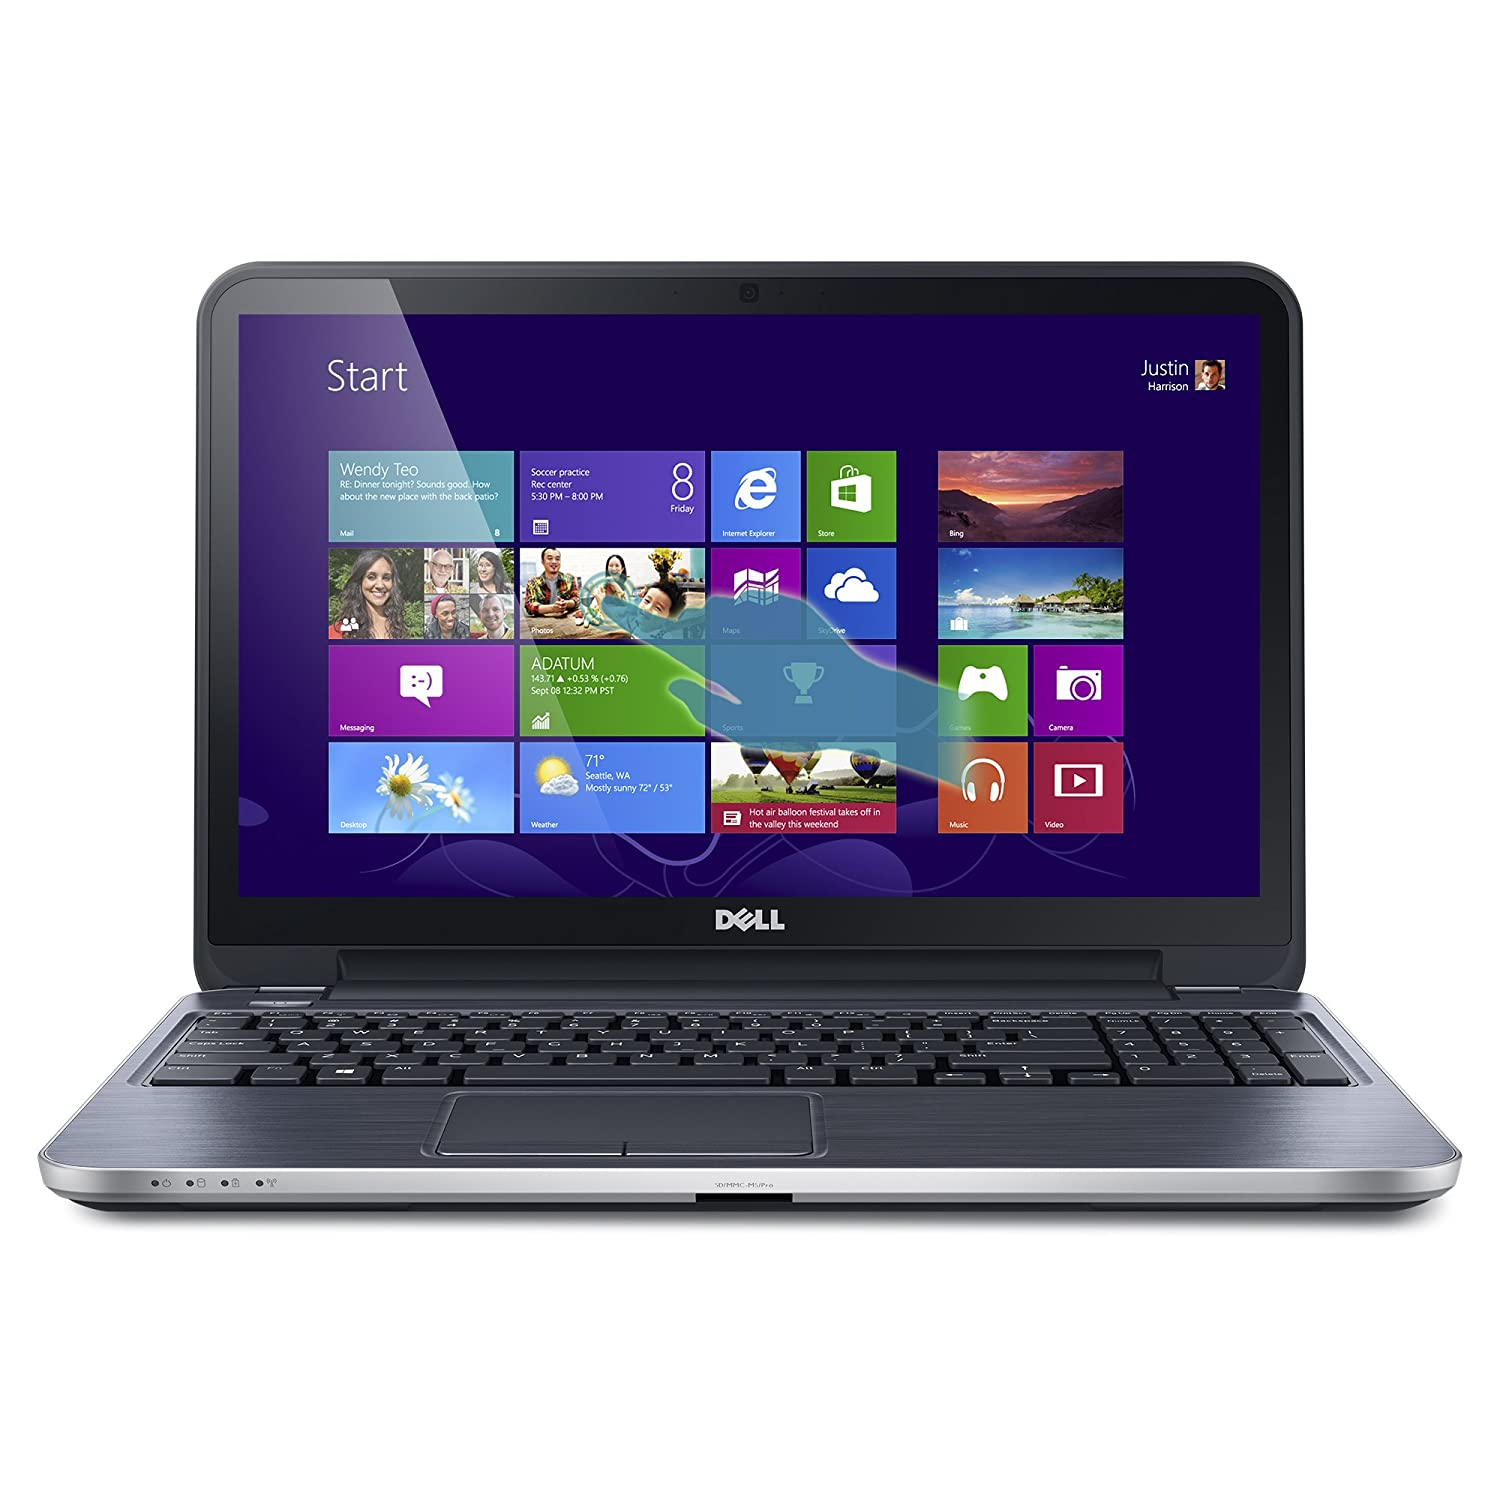 Dell Inspiron i15RMT-5124sLV 15.6-Inch Touchscreen Laptop